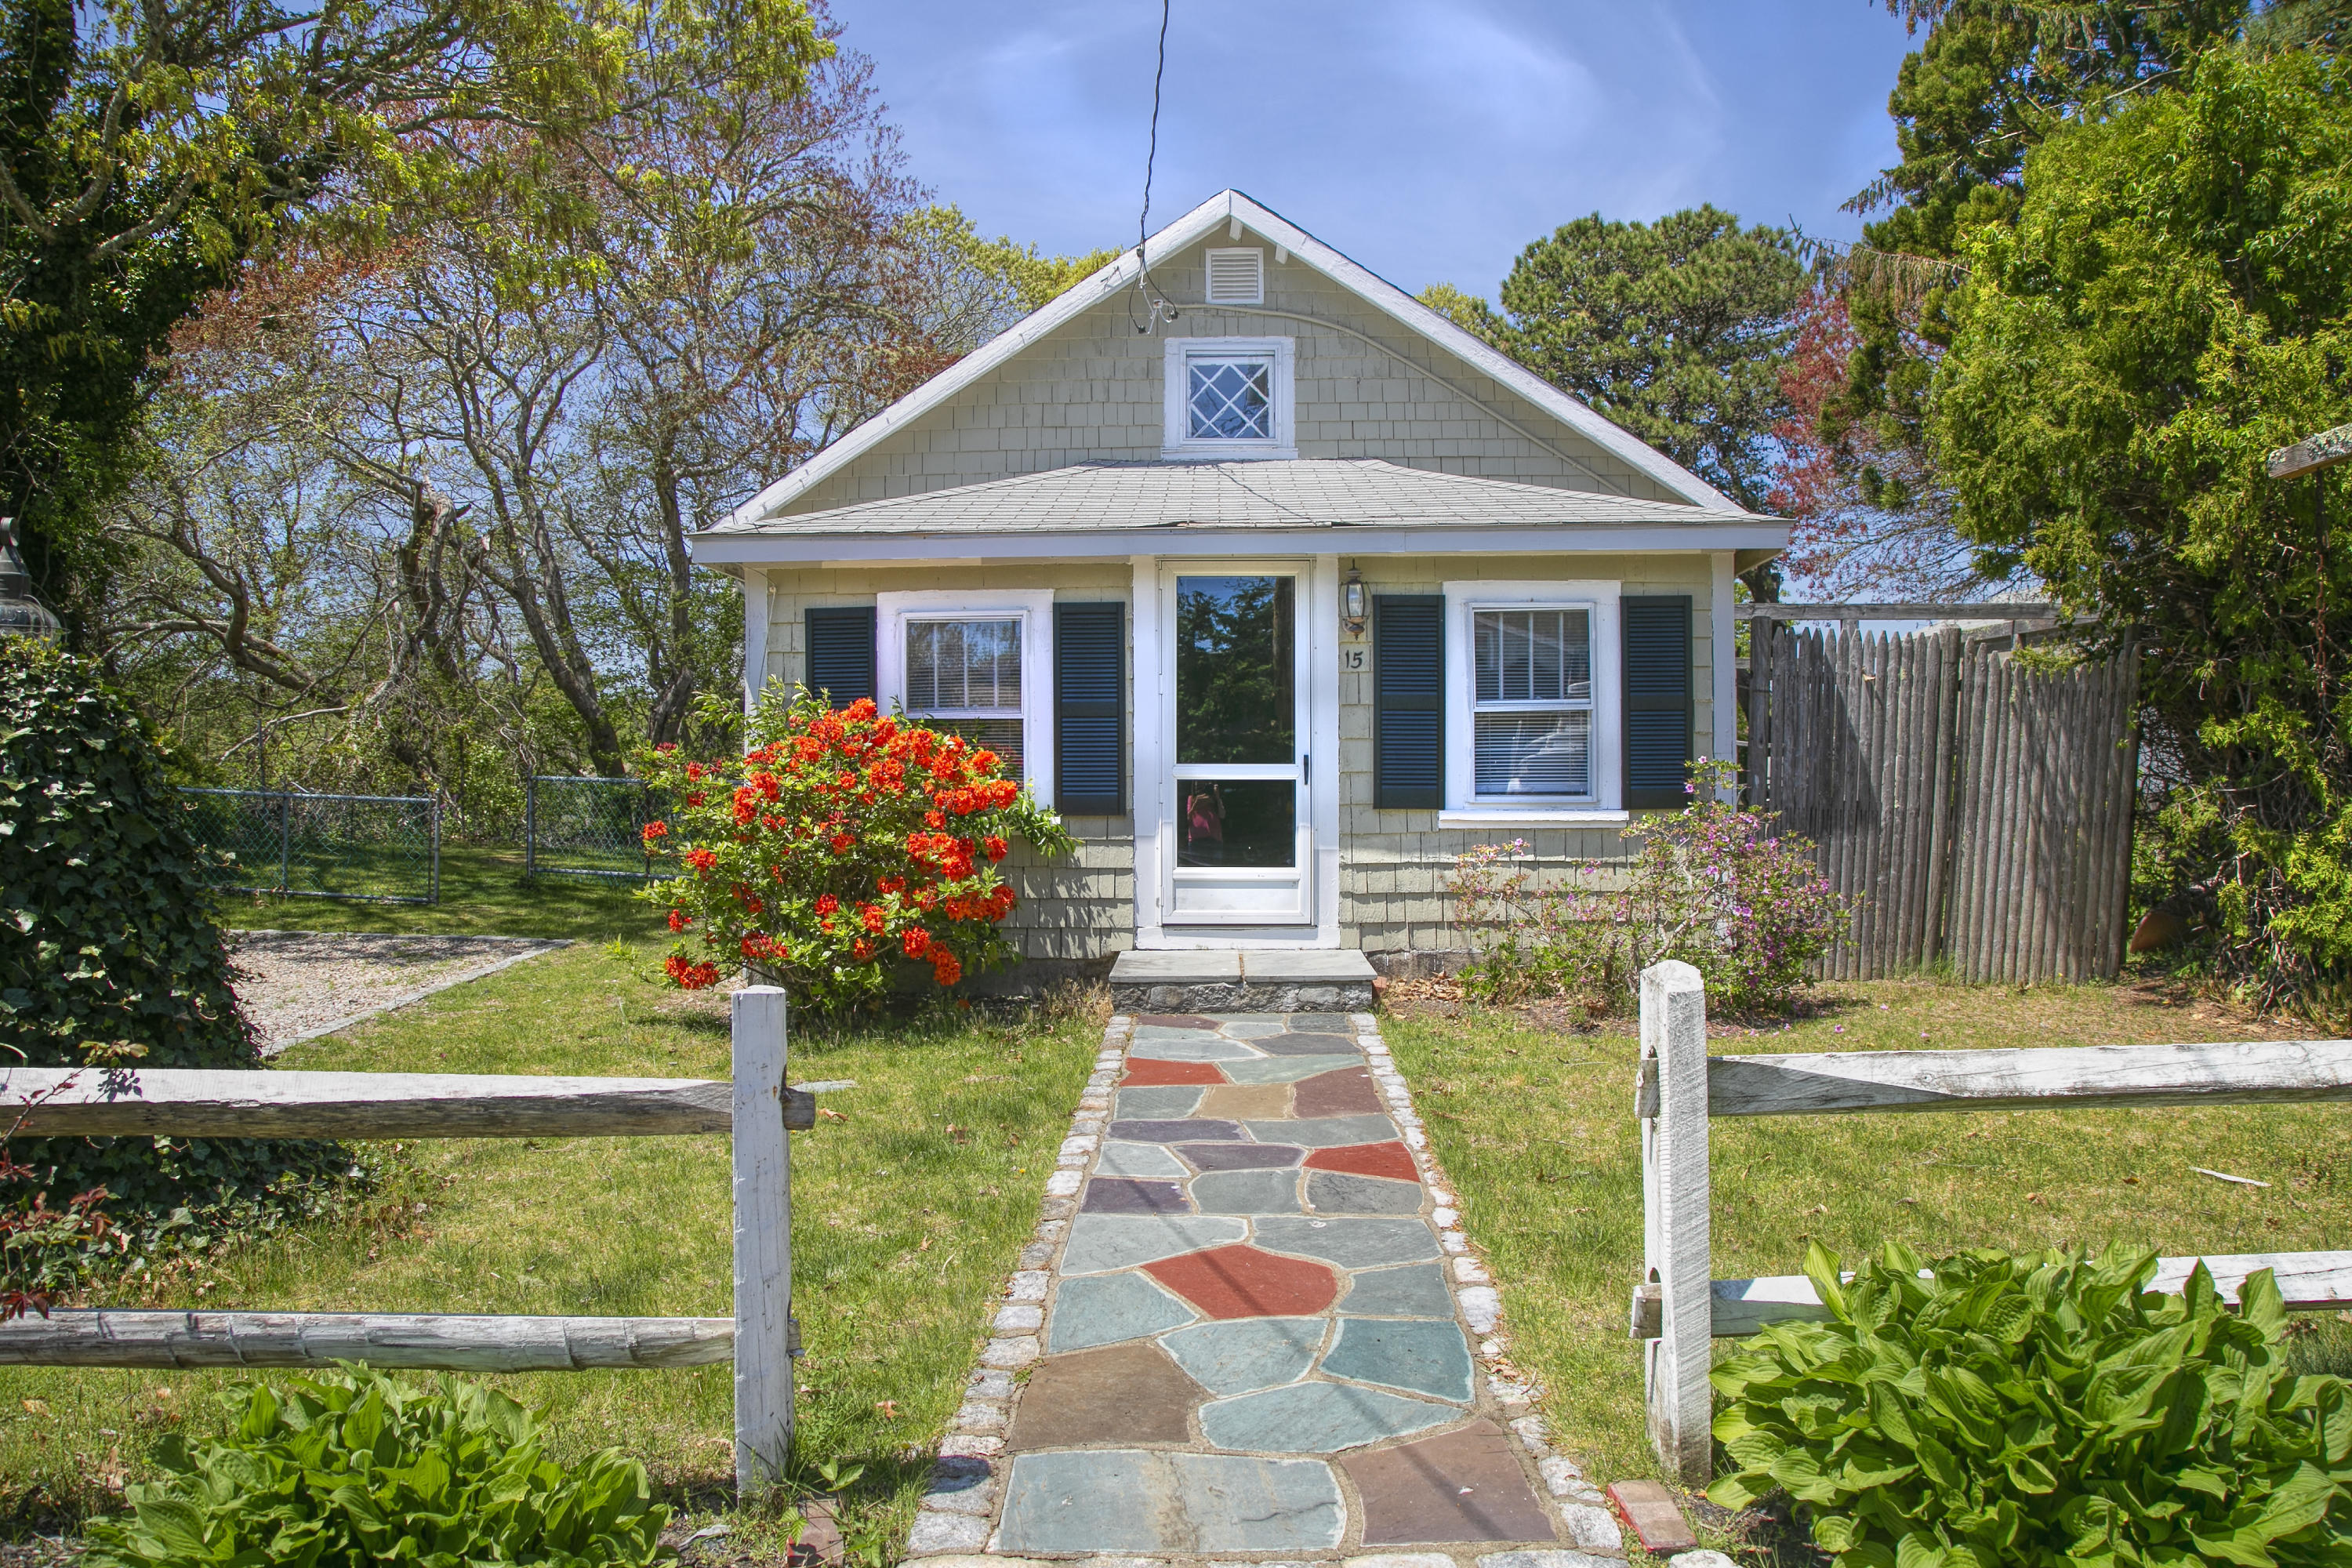 click to view more details 15 Lone Tree Road, Dennis Port, MA 02639